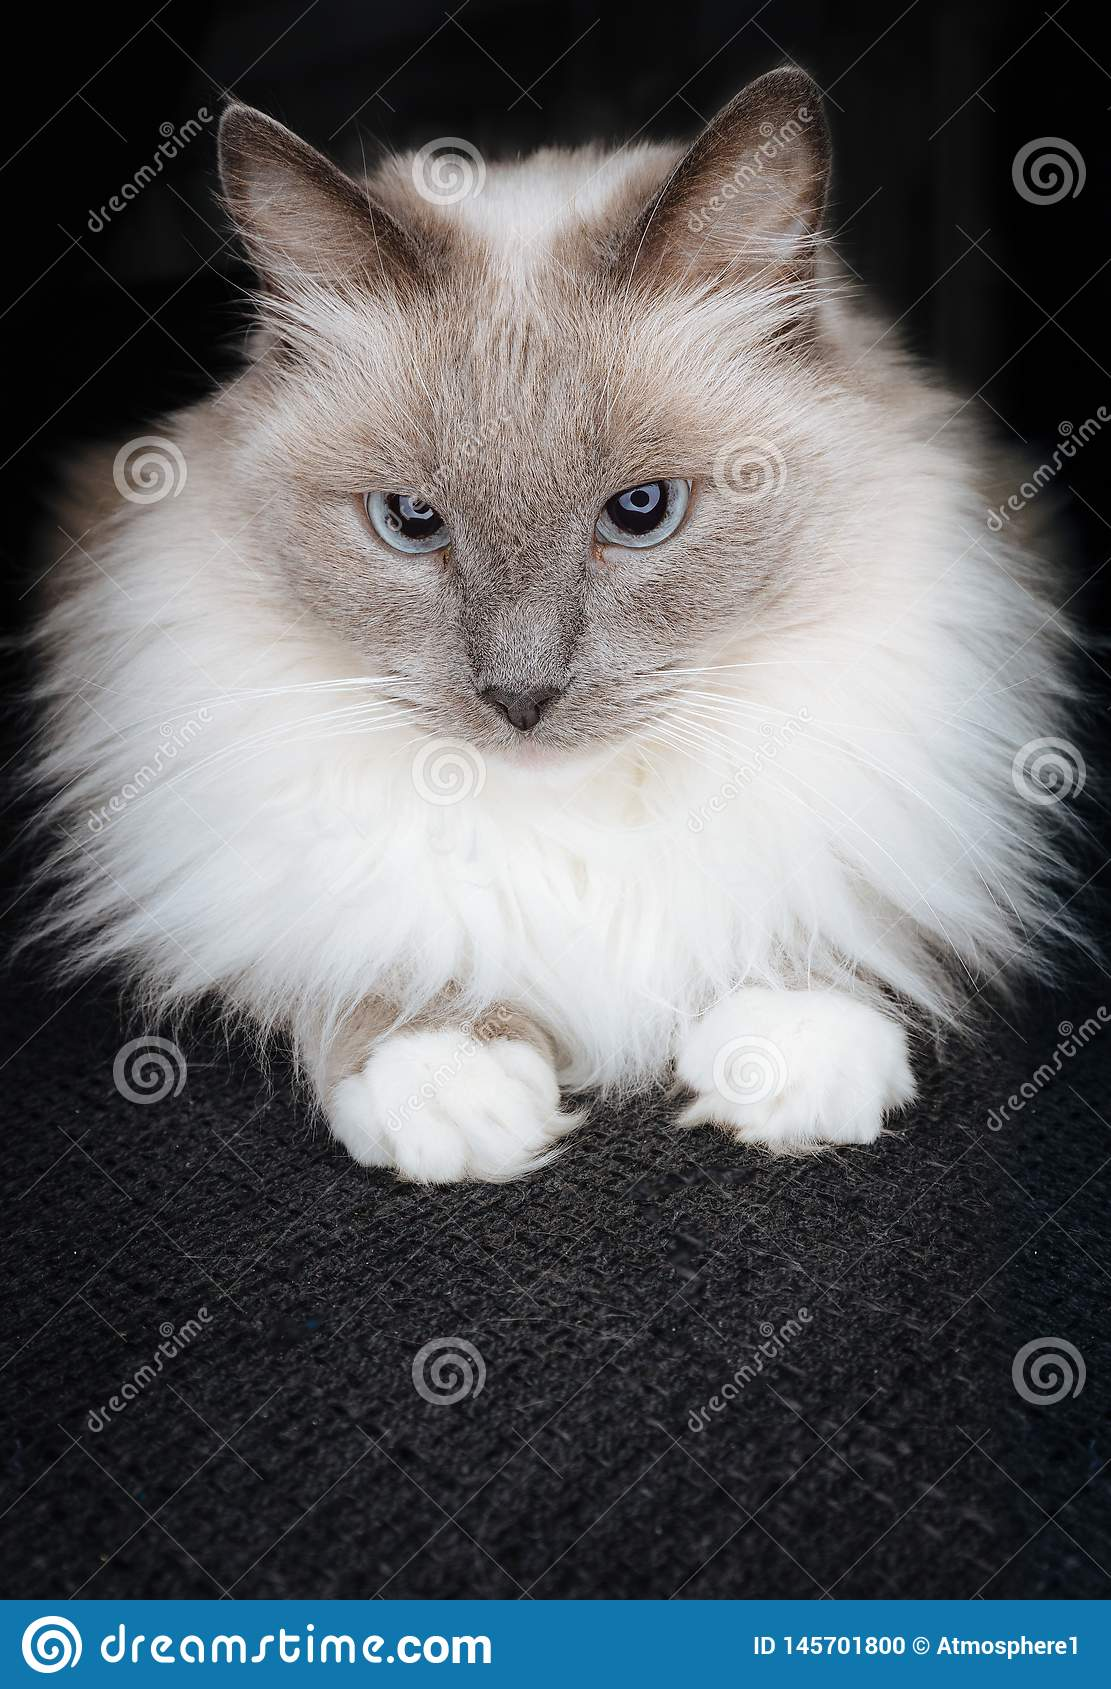 Super cute ragdoll cat posing as a little ball of fur with beautiful catchy eyes and curious look